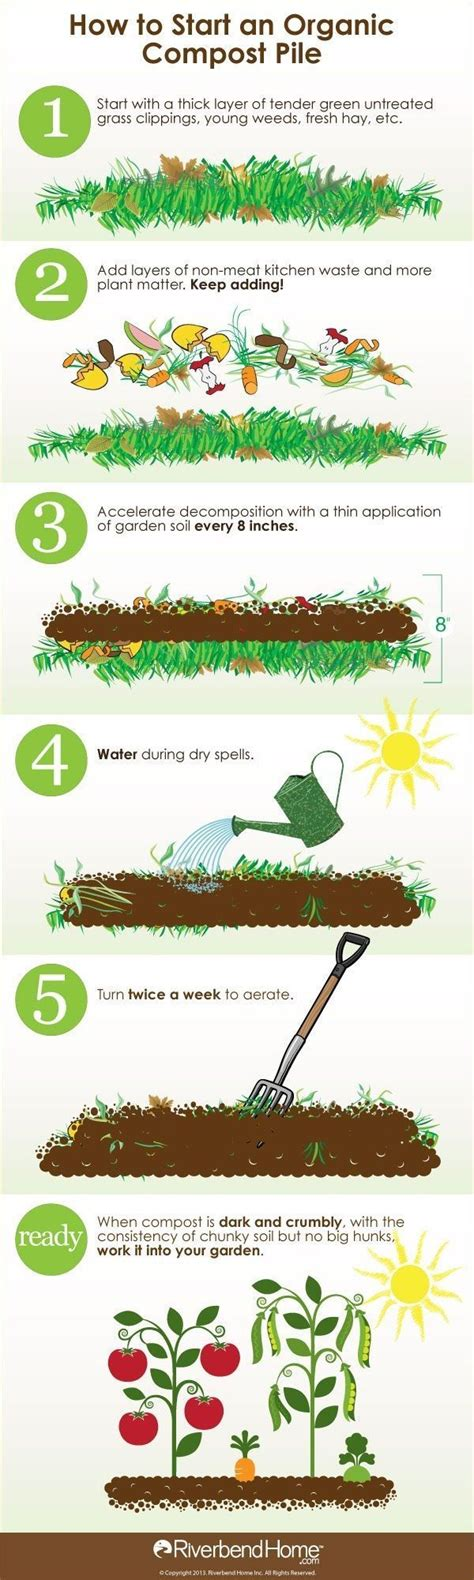 how to make a compost pile in your backyard best 25 how to make compost ideas on pinterest making